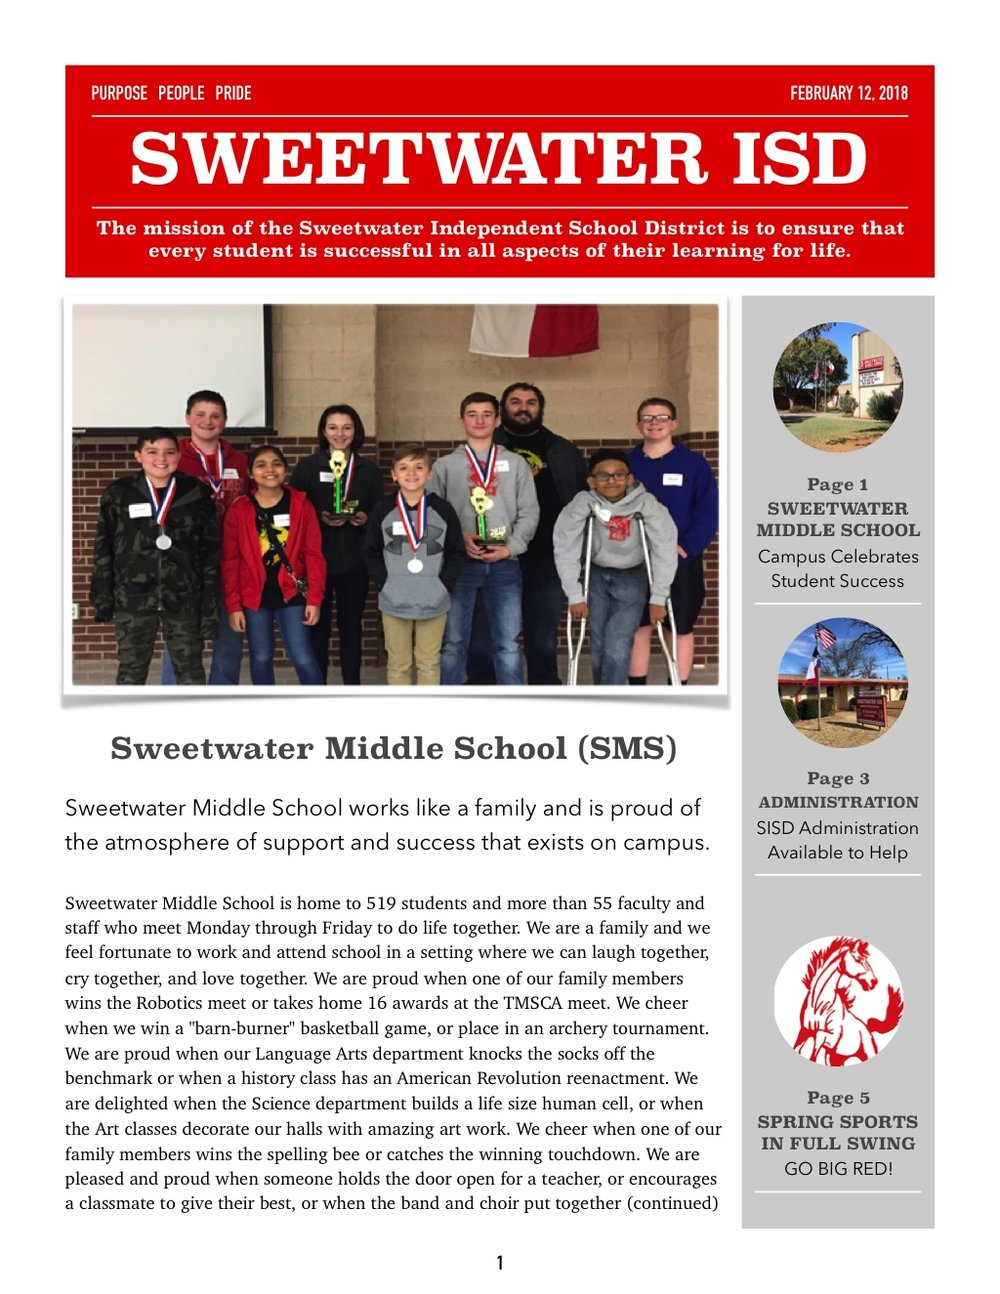 Sweetwater ISD Newsletter February 2018-1.jpg